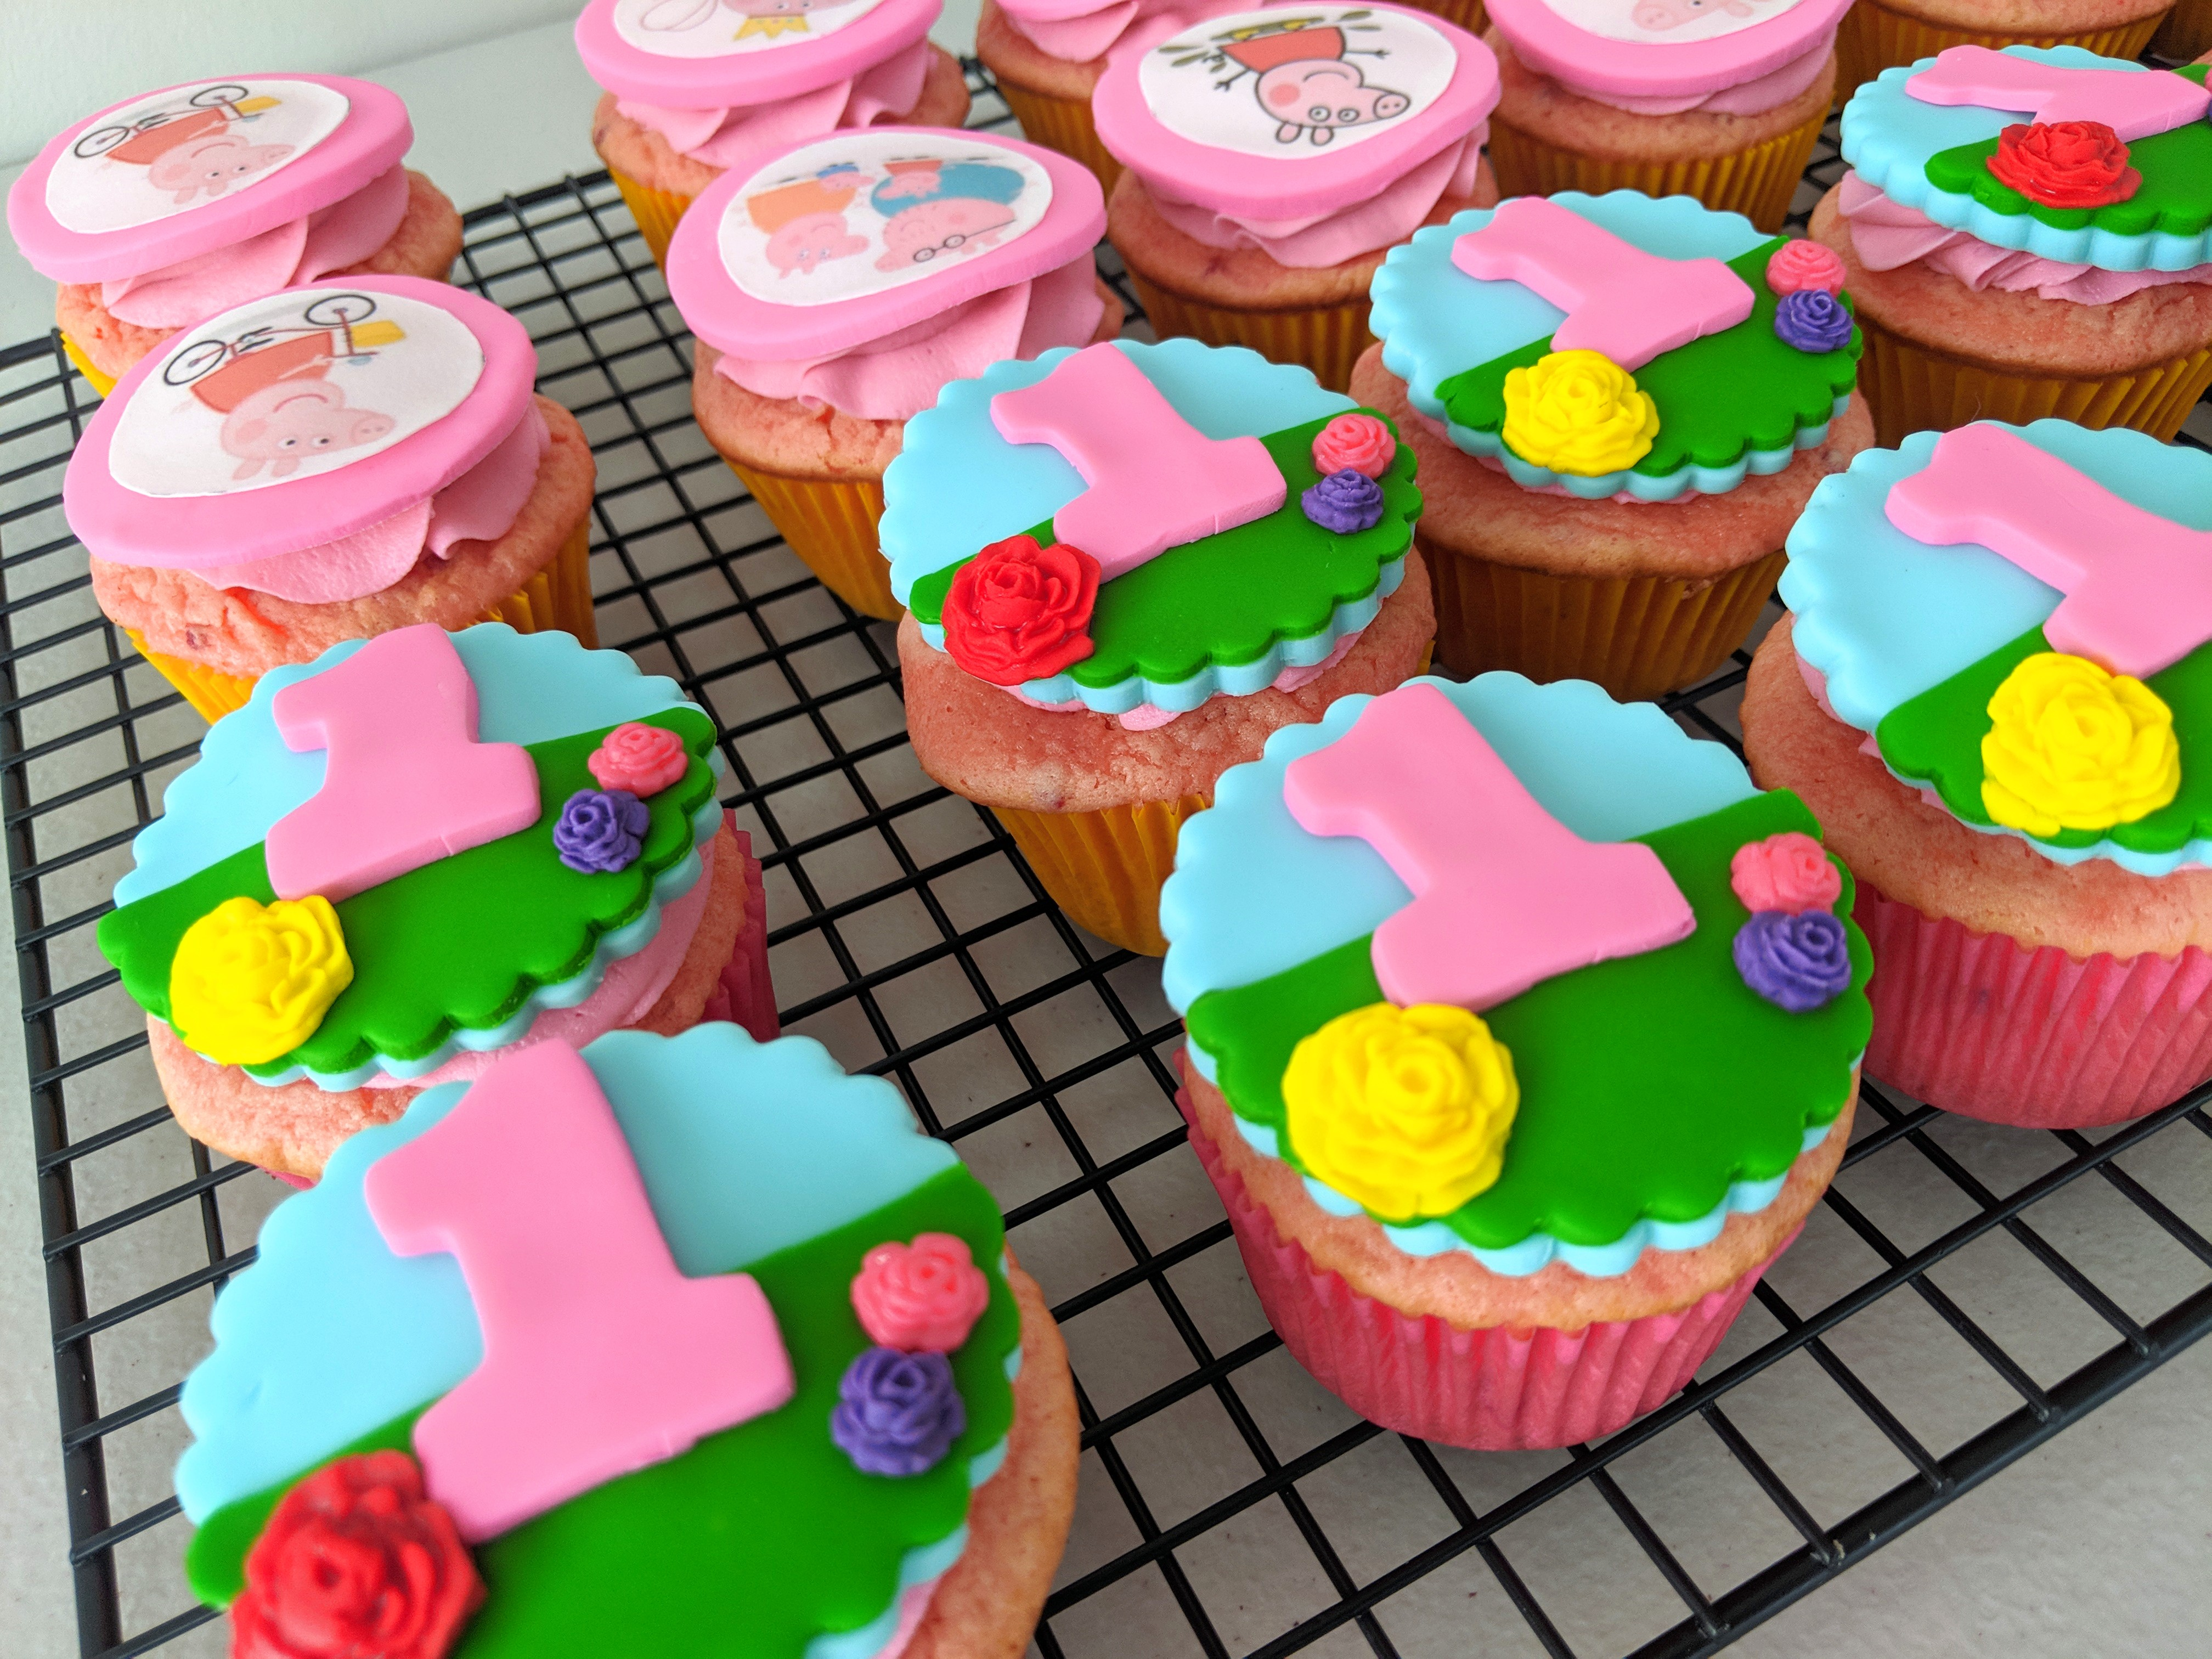 Peppa The Pig Cupcakes (two)